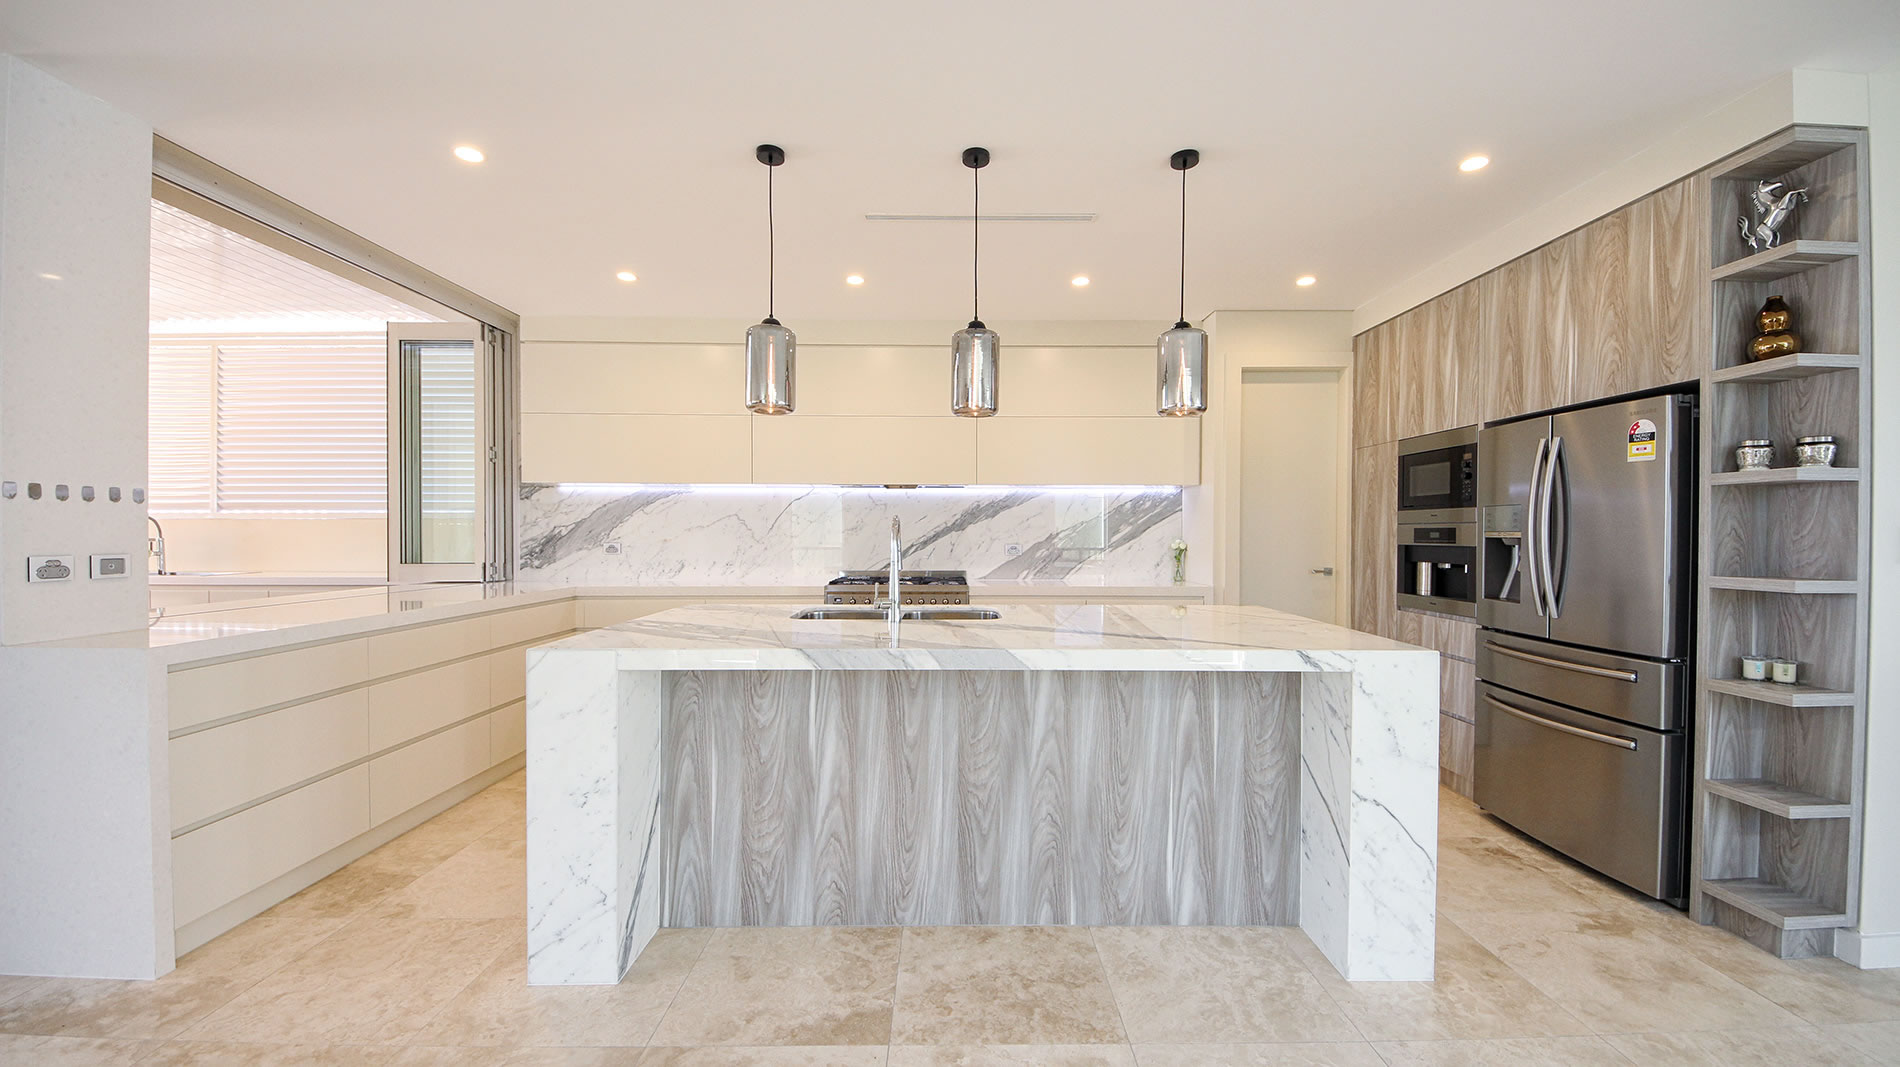 Custom kitchen design sydney